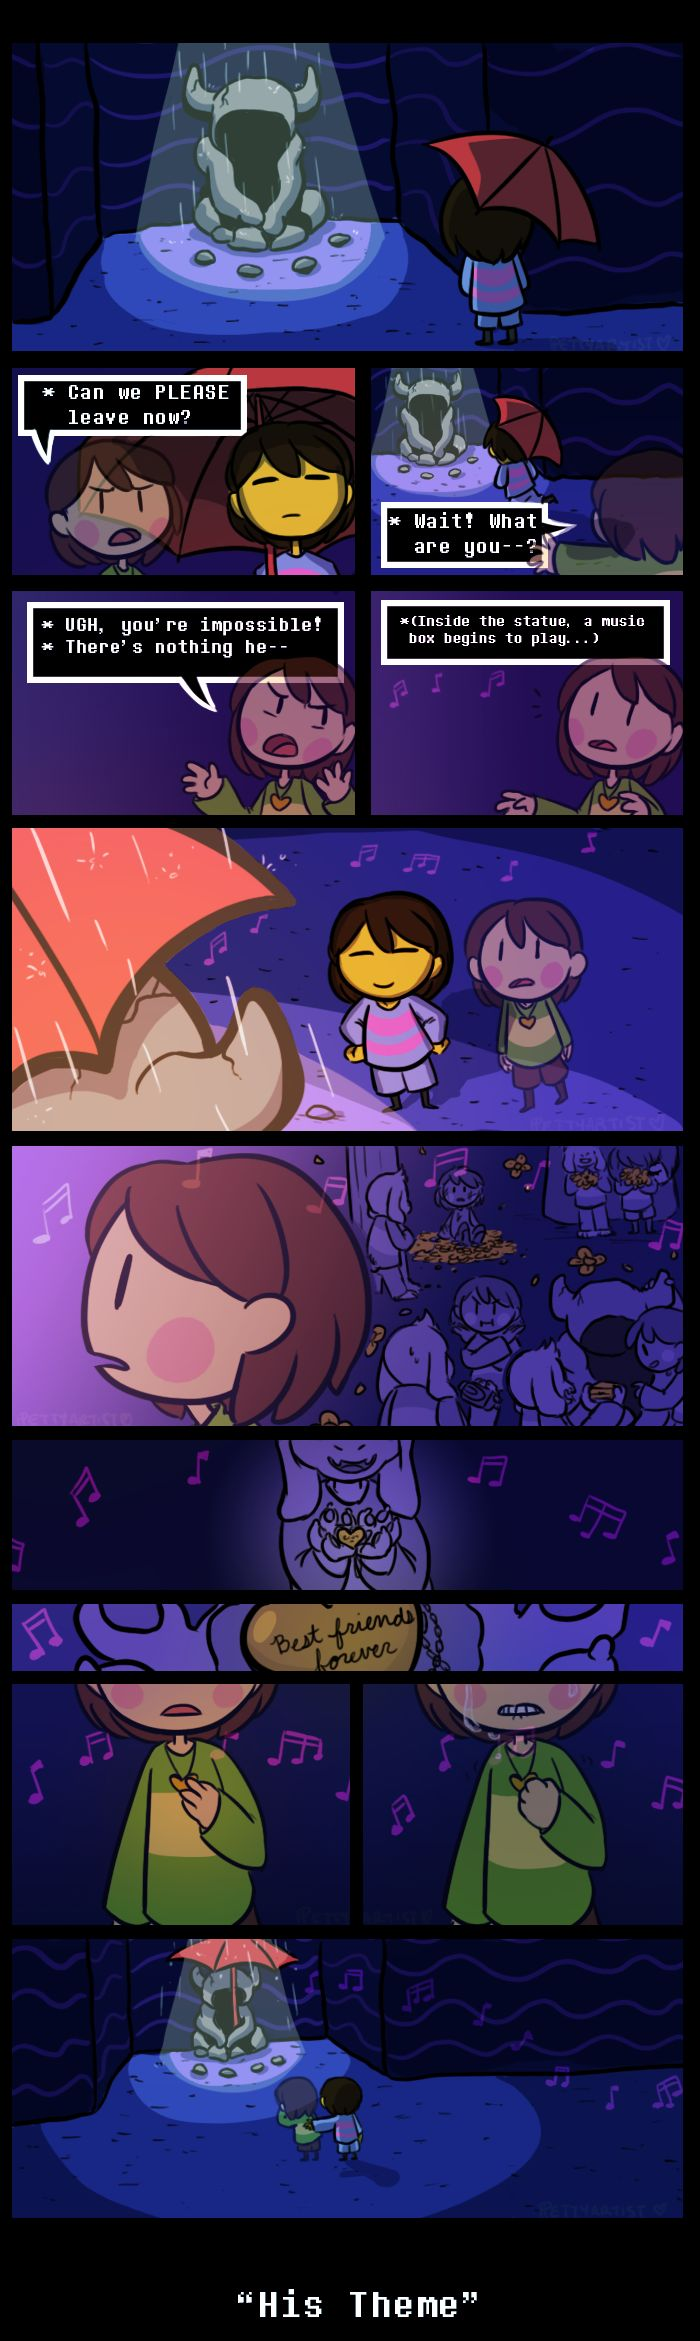 Gmail themes anime - Memory Undertale Spoilers By Pettyartist